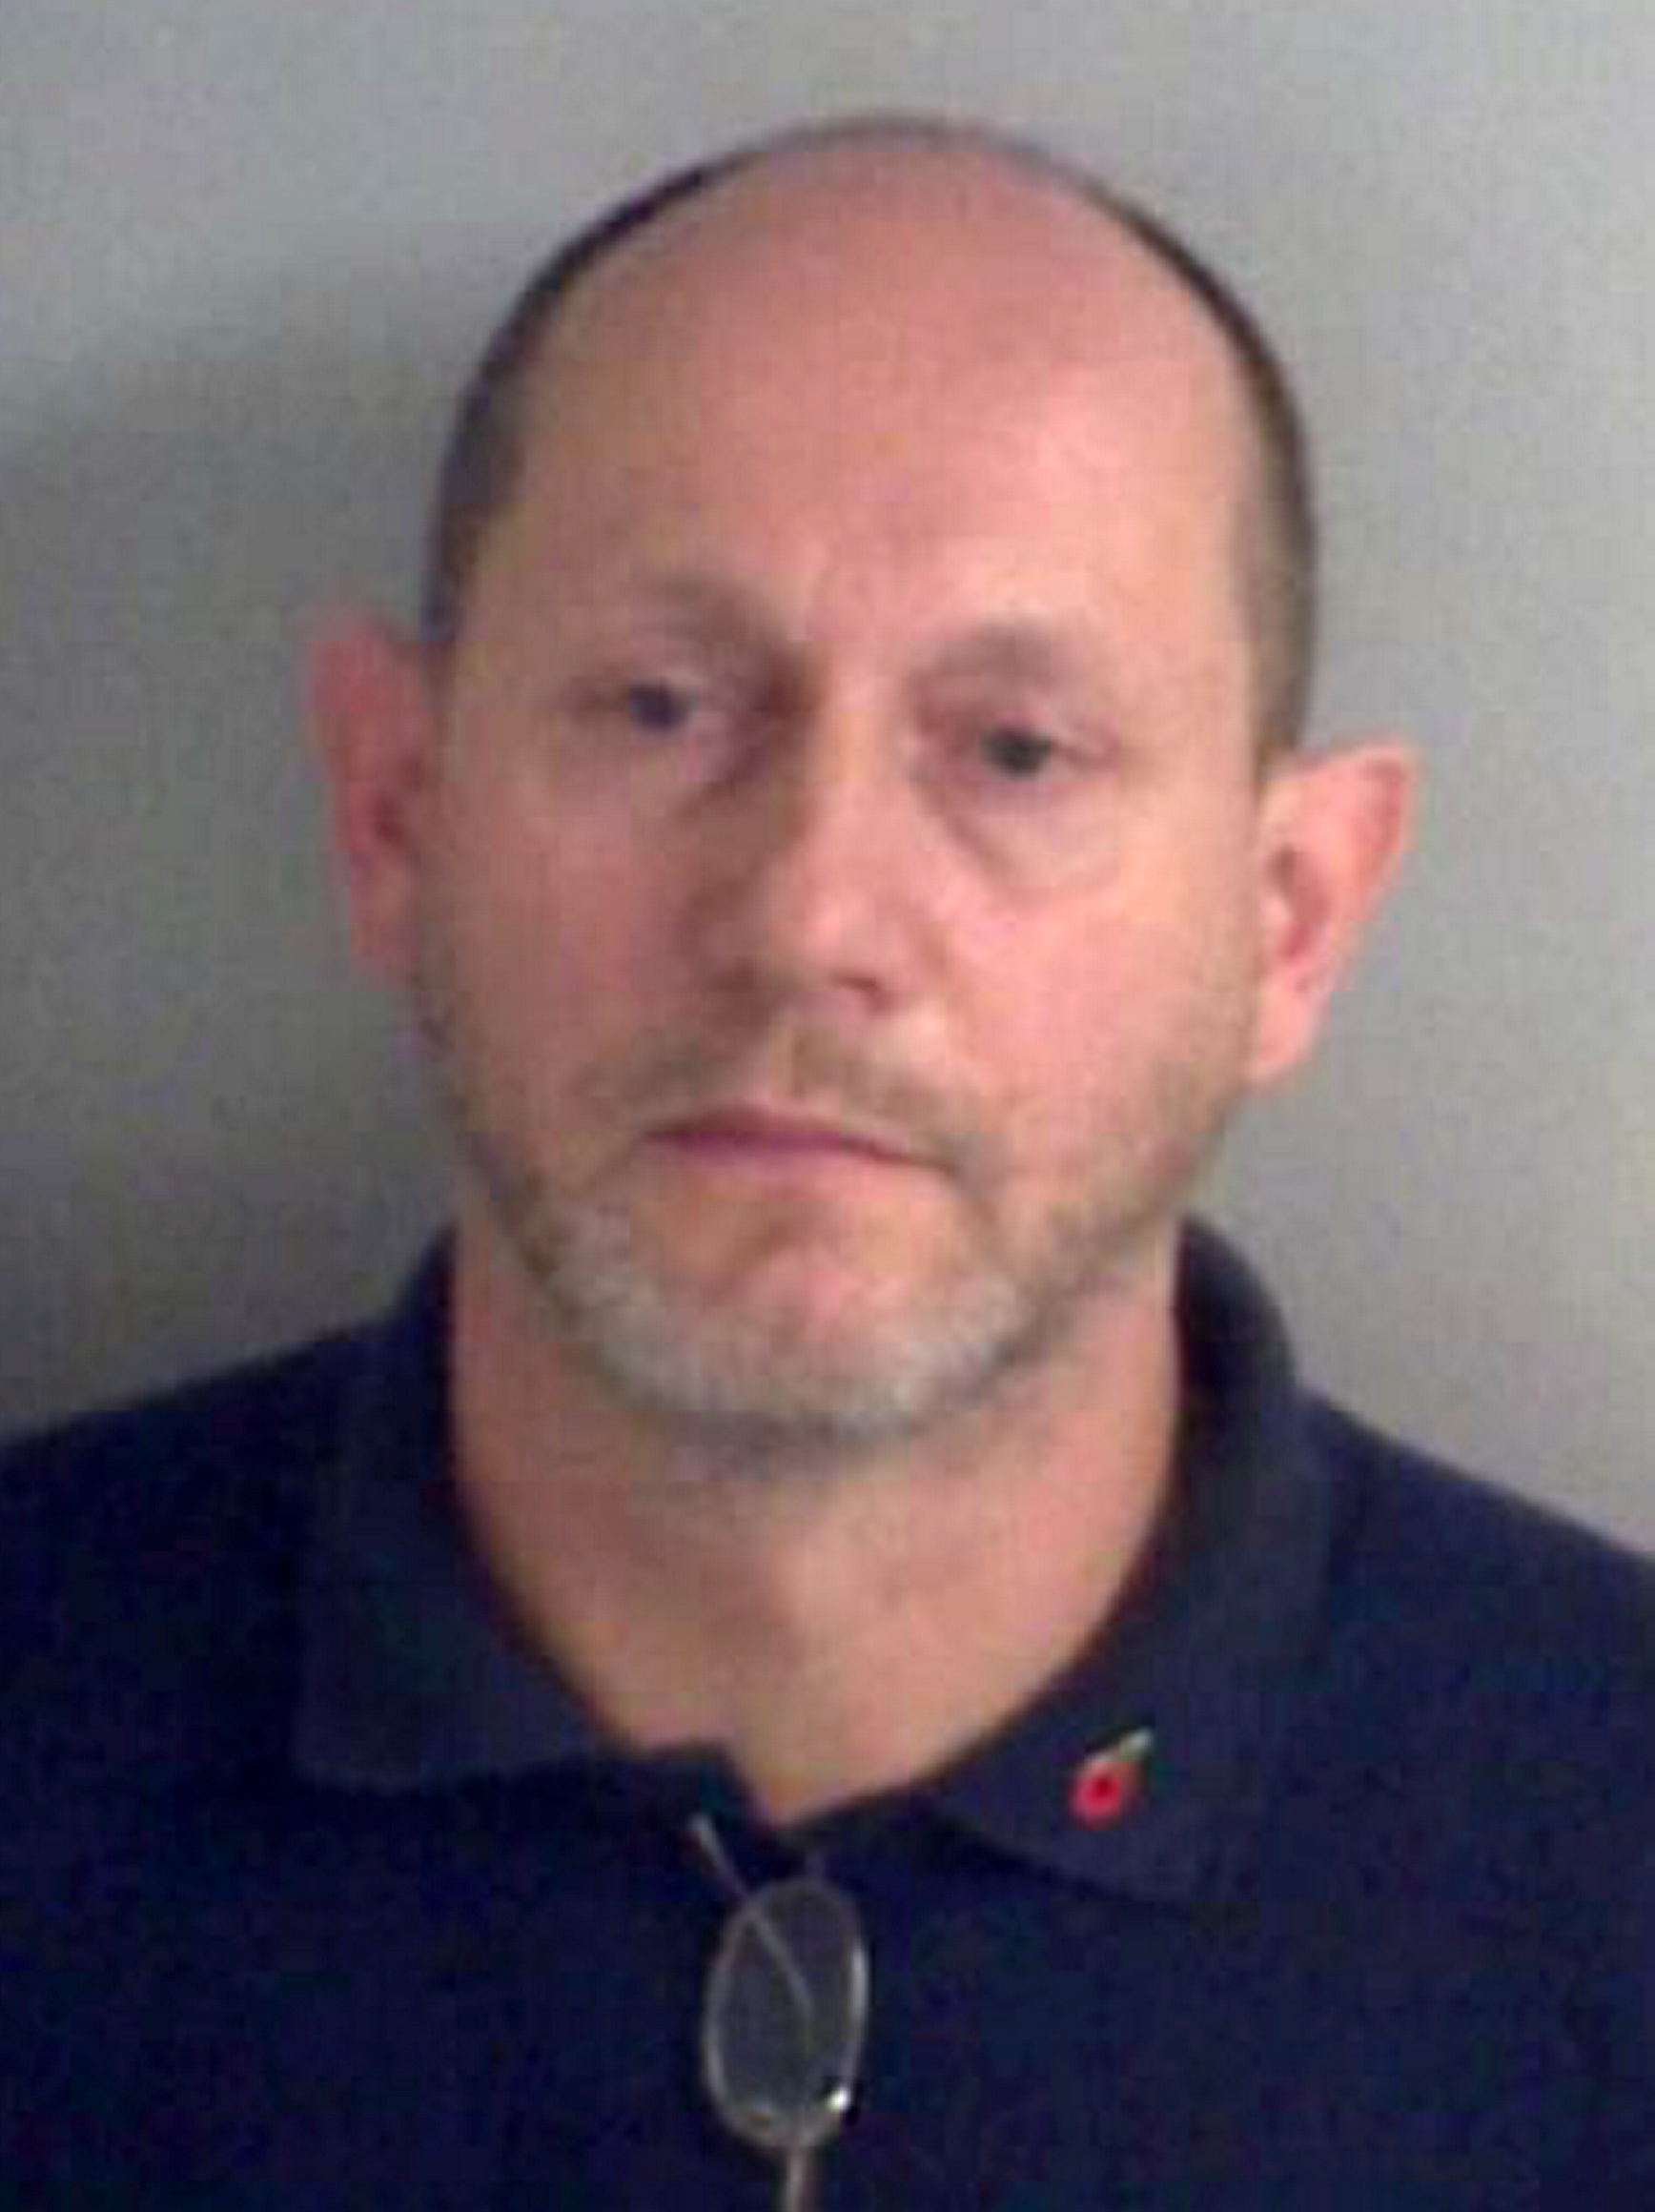 A paedophile could avoid prison because it doesn't have Wi-Fi